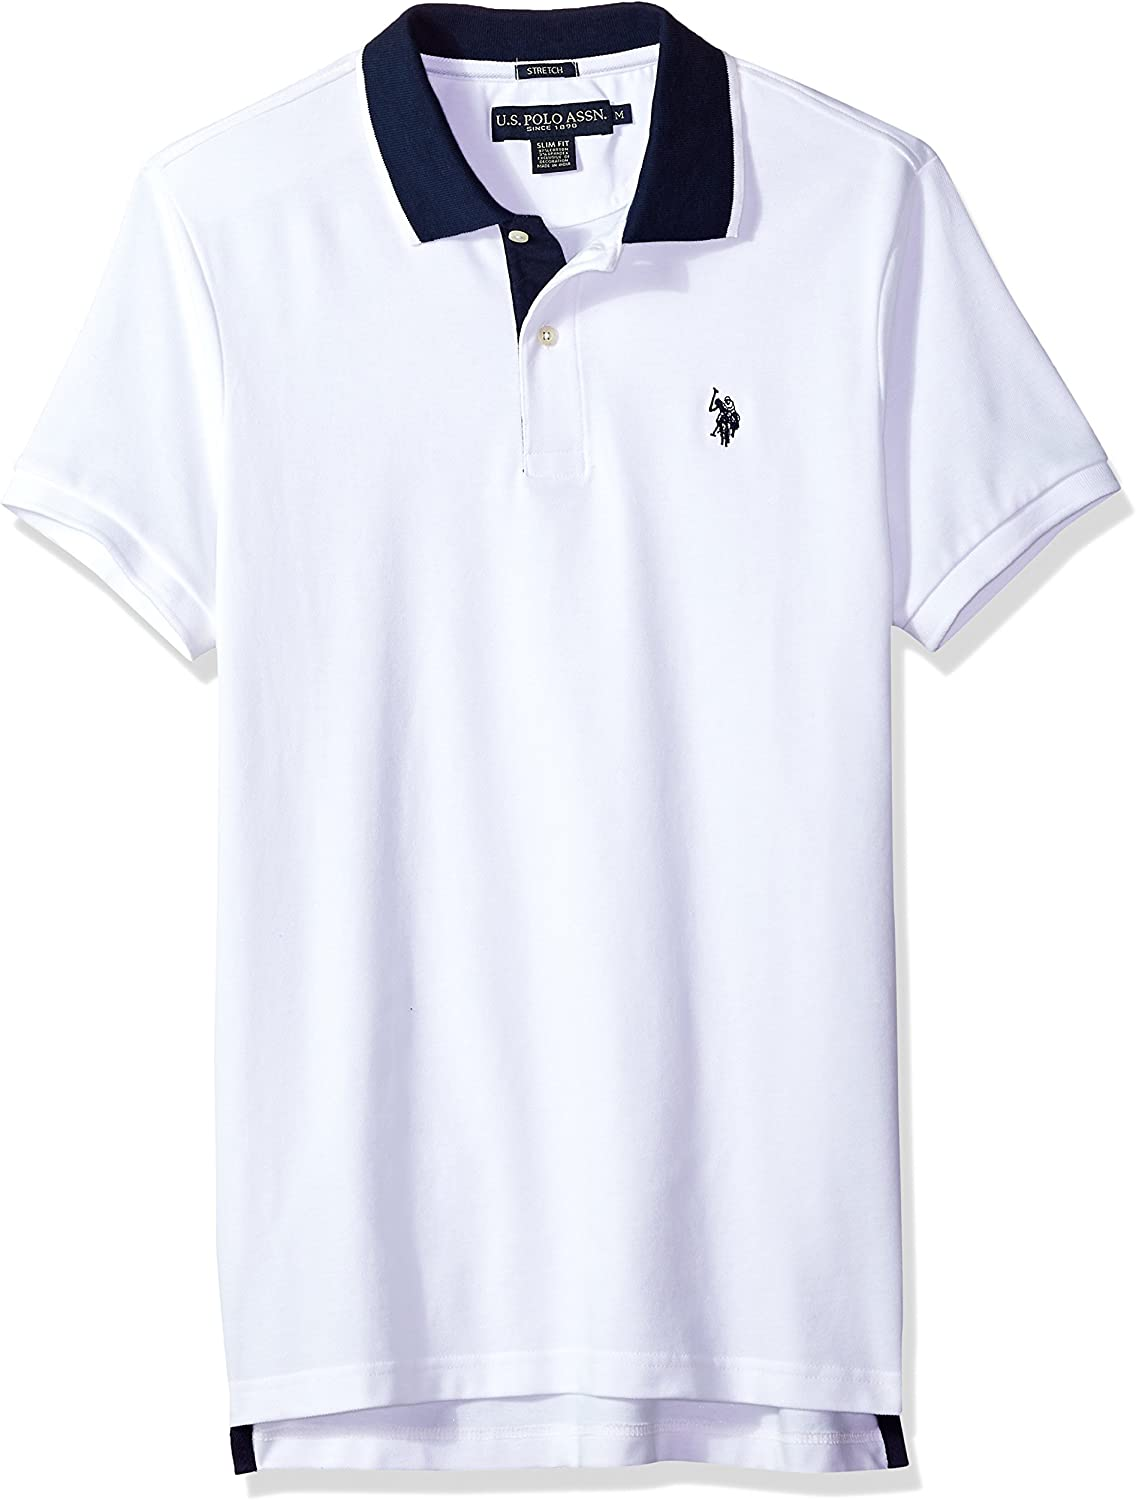 U.S. Polo Super popular specialty store Assn. Men's Short Sleeve Shi Solid High quality new Fit Pique Slim